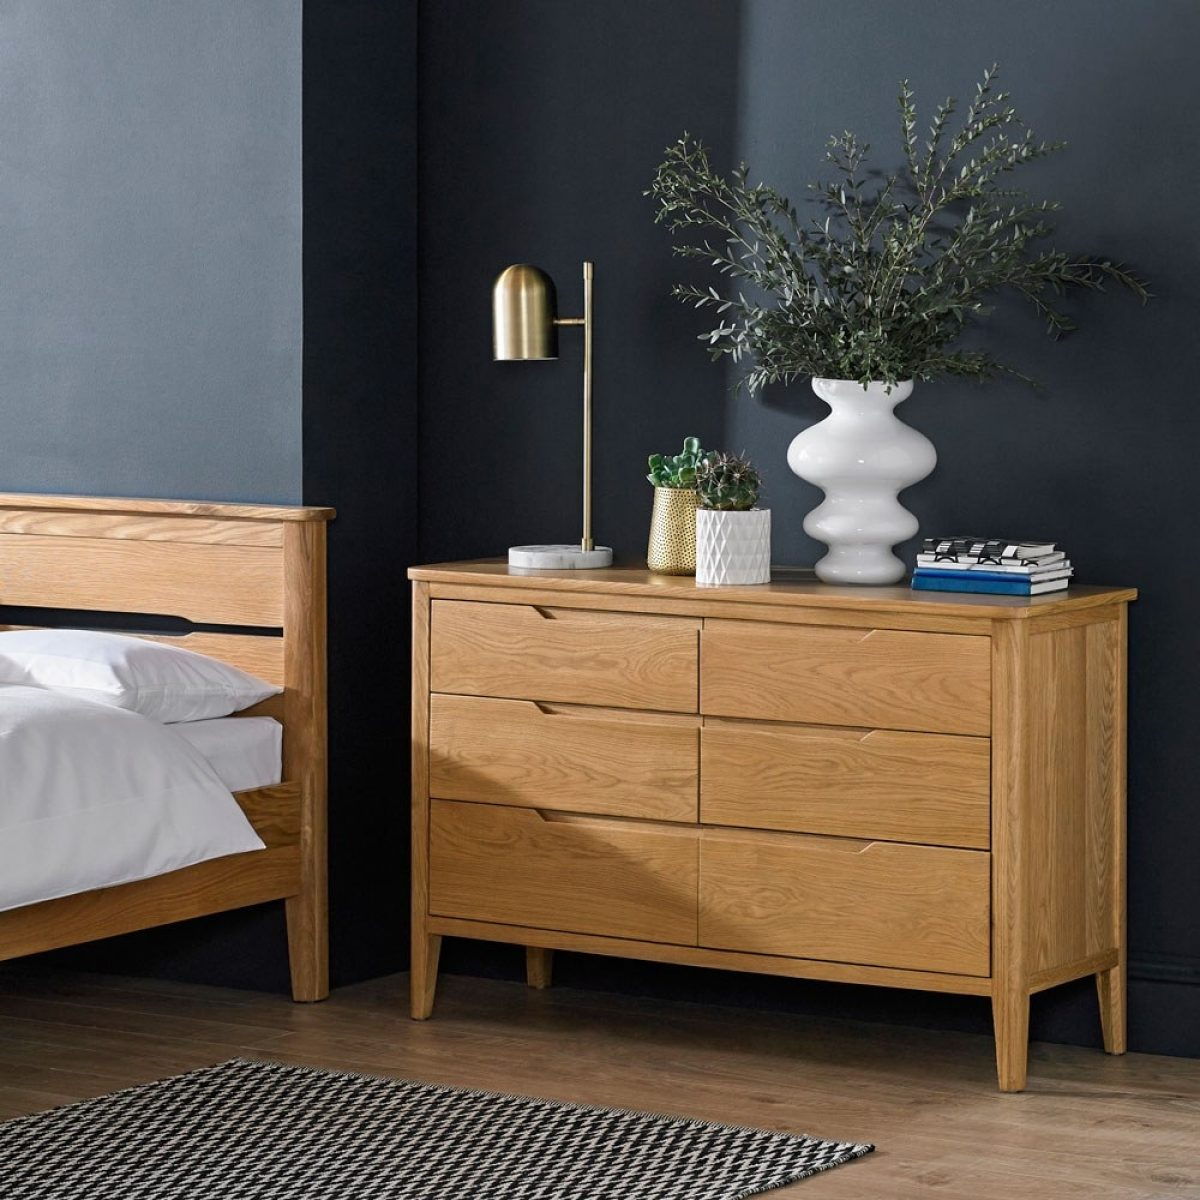 NEW Hartuka chest of drawers MT 04